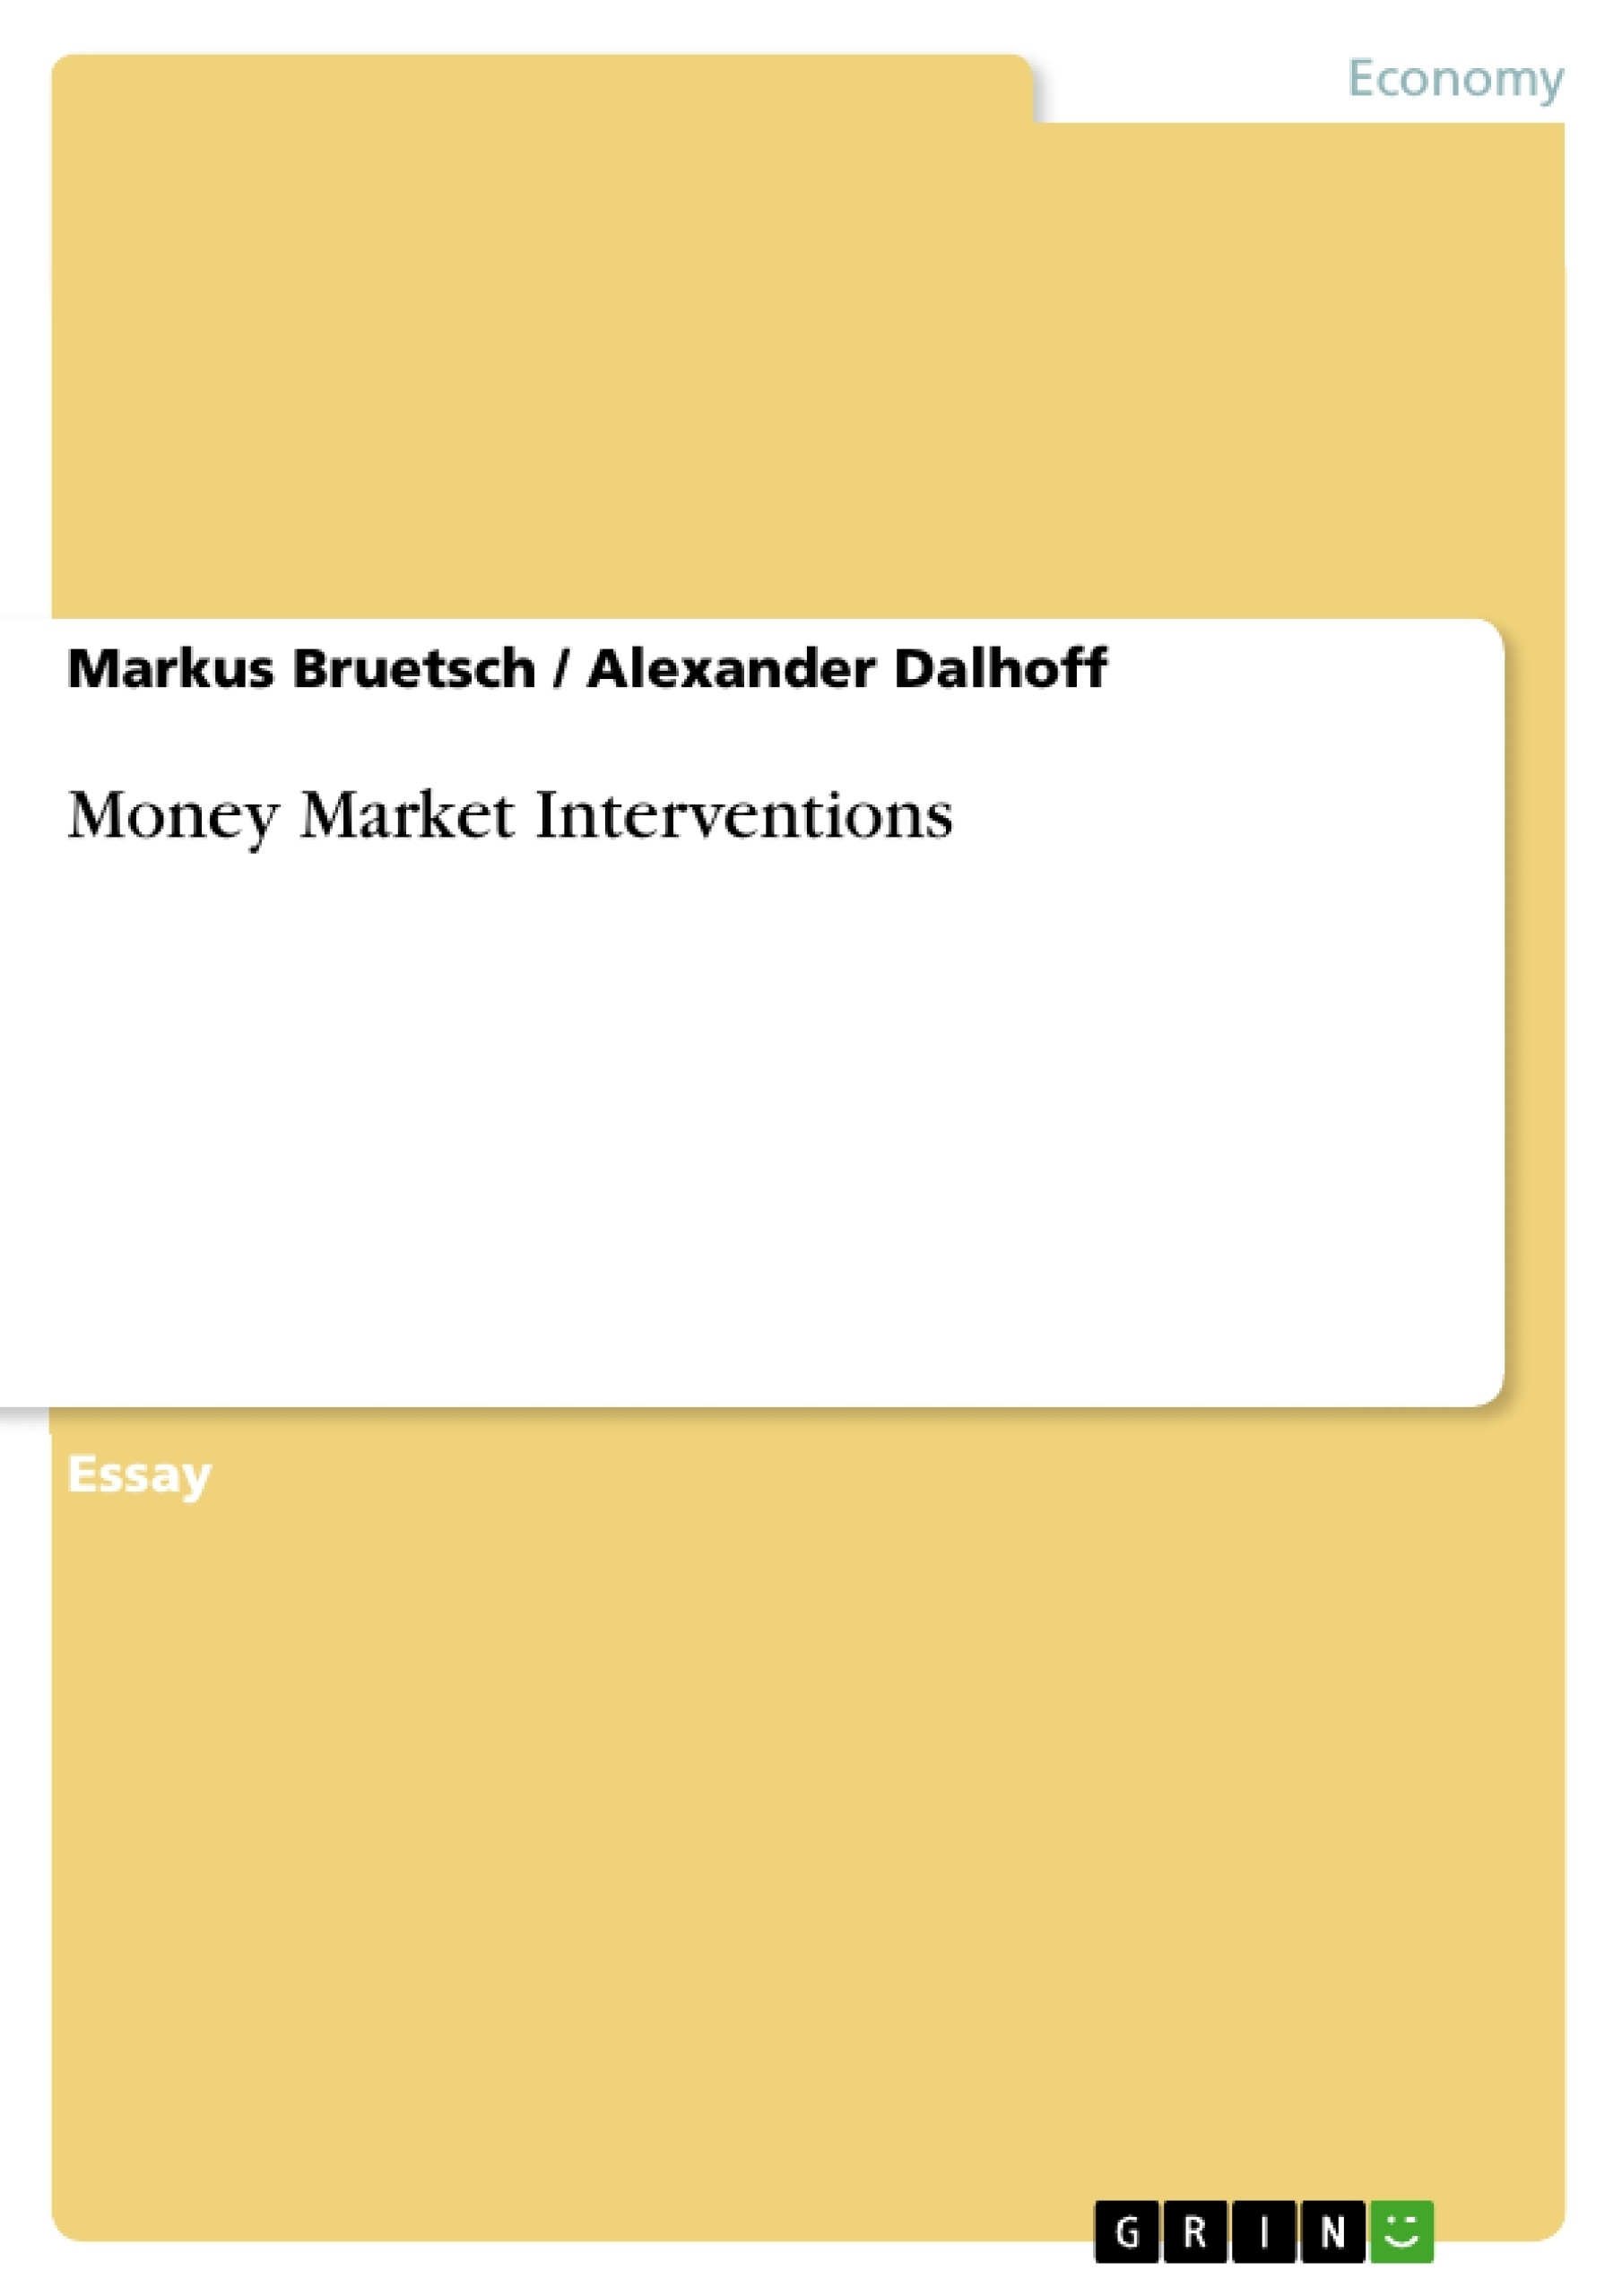 Title: Money Market Interventions